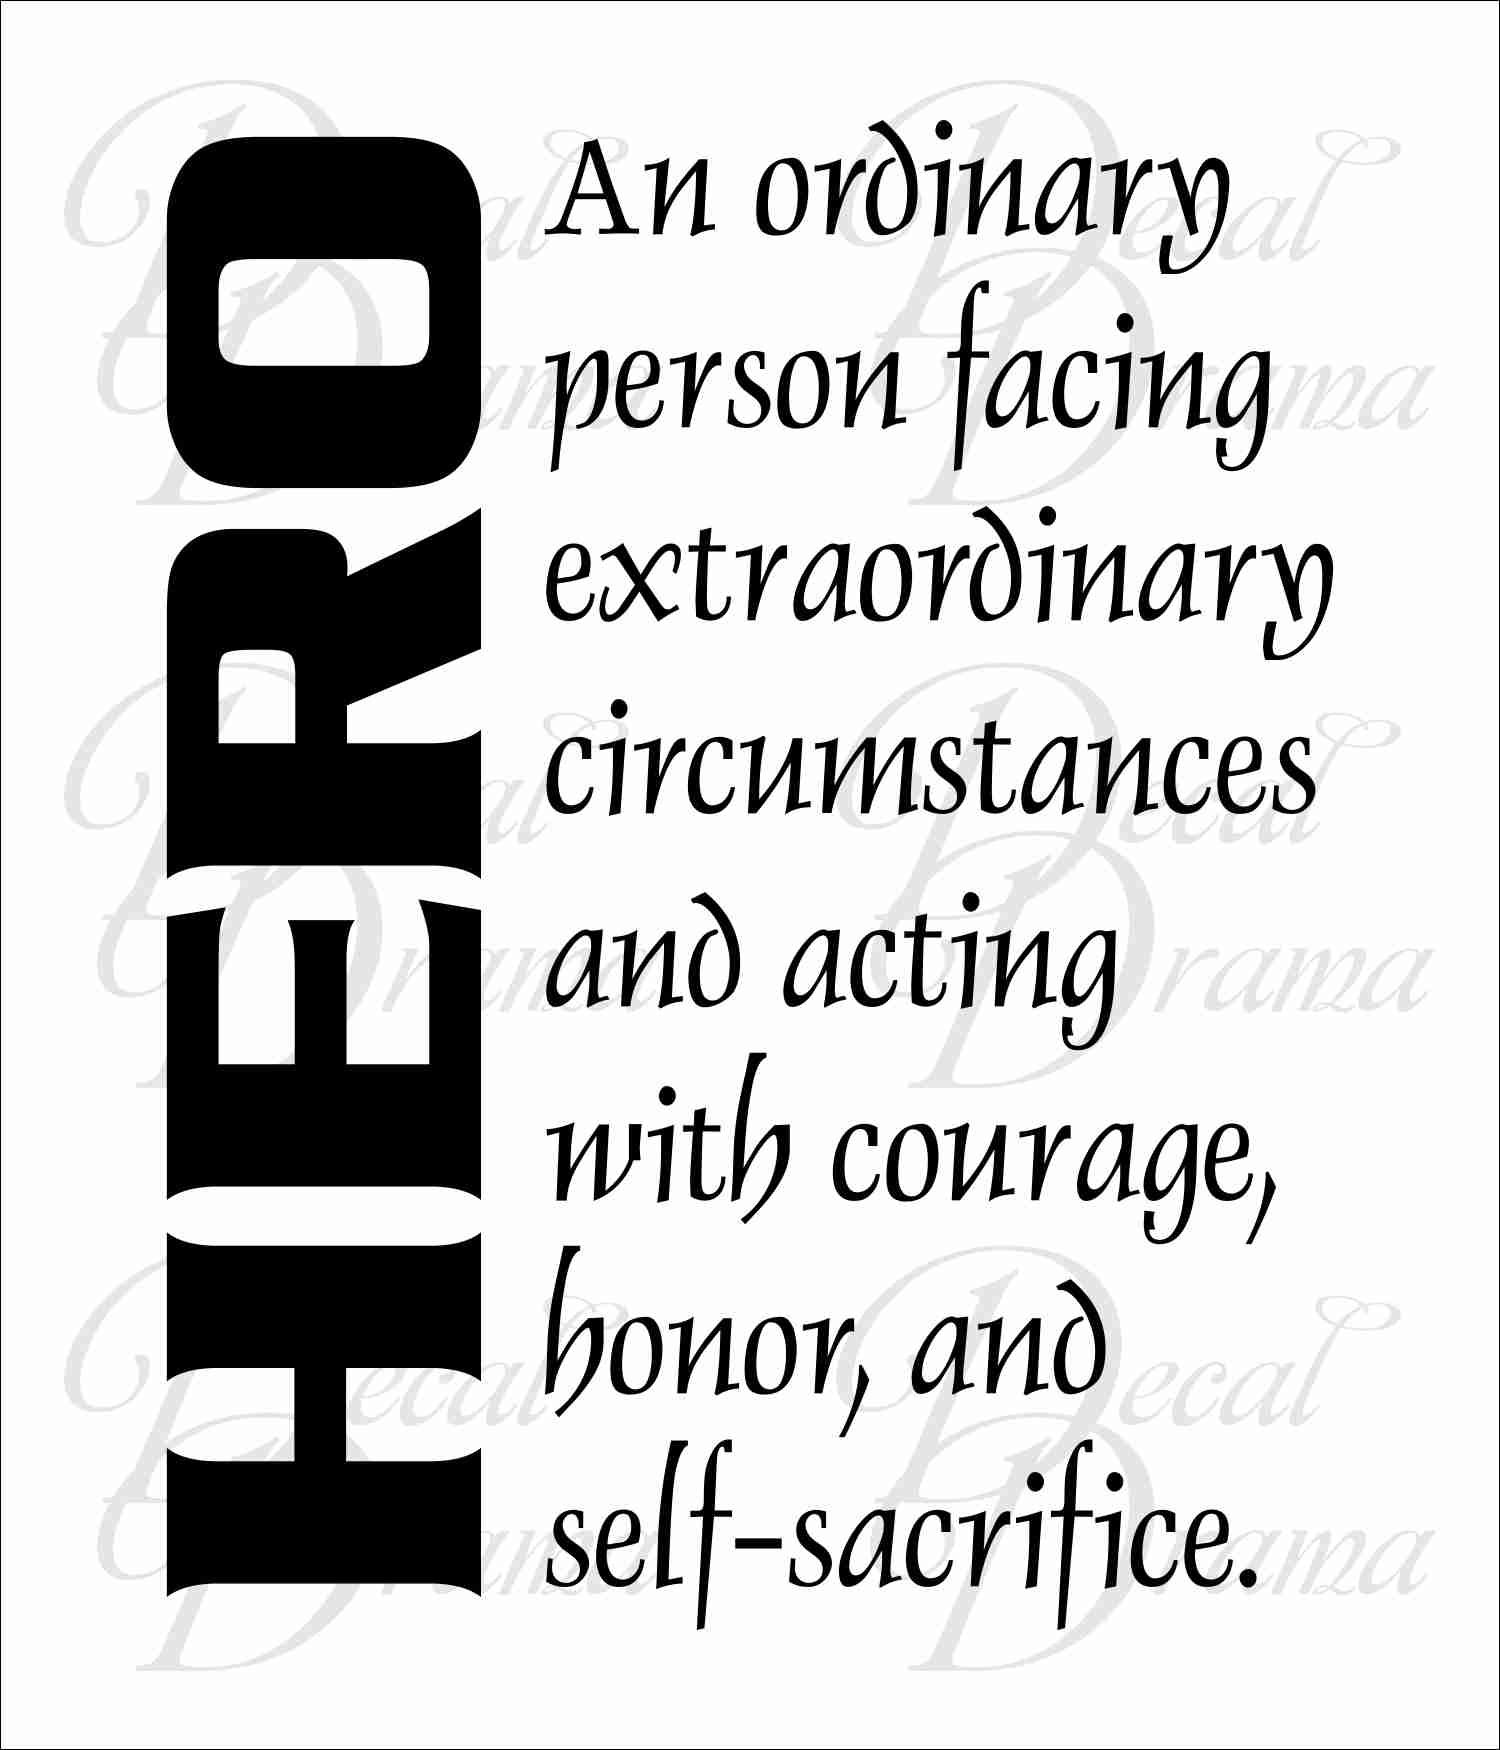 HERO Definition: An Ordinary Person Facing Extraordinary Circumstances And  Acting With Courage, Honor,